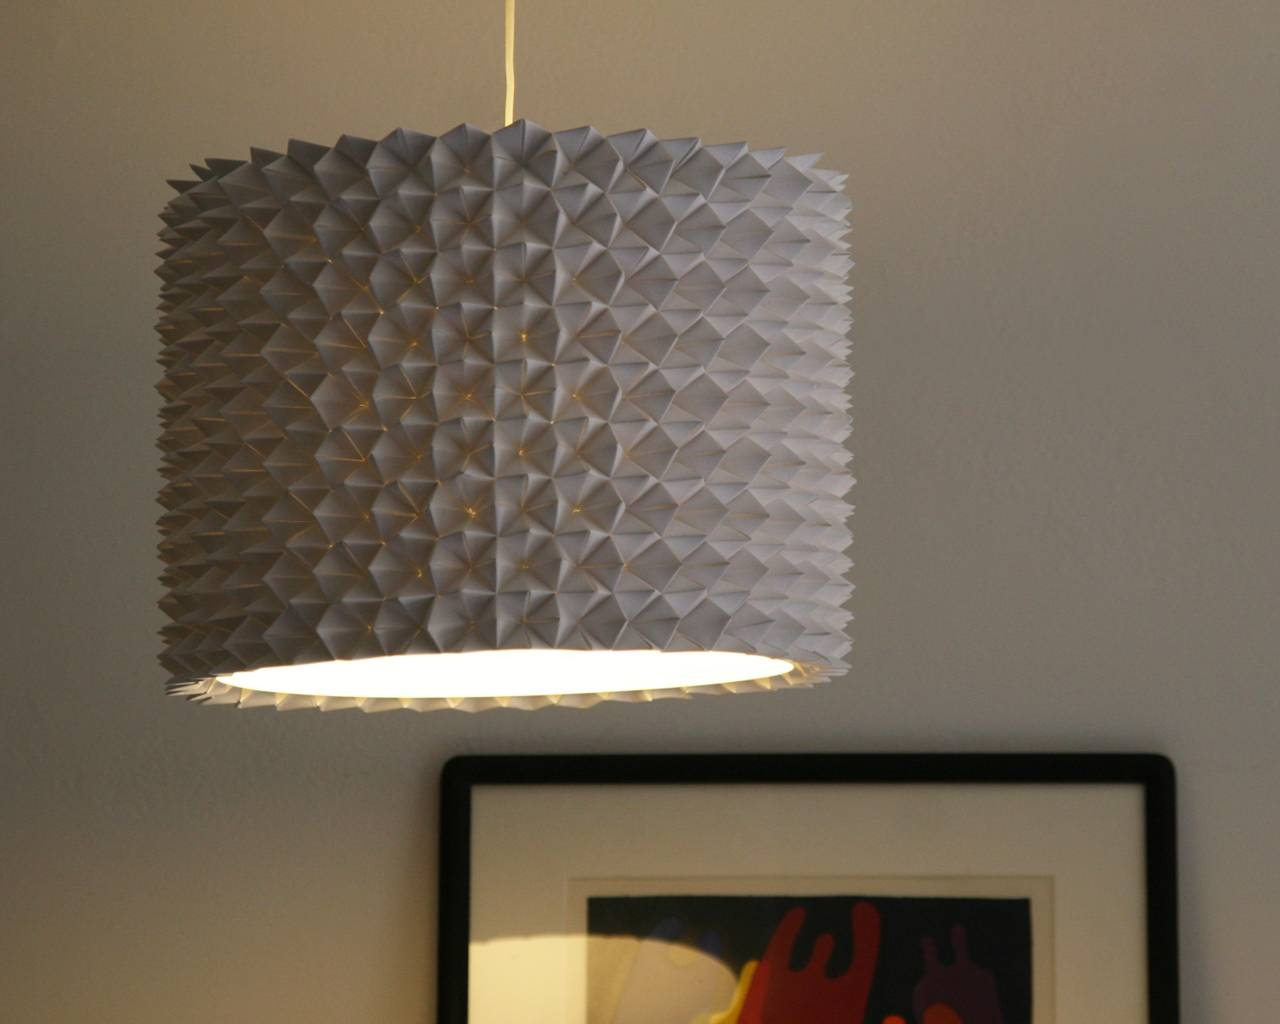 Faceted Pendant Lights – The Large Drum Shade | The 3 R's Blog inside Rectangular Drum Pendant Lights (Image 9 of 15)